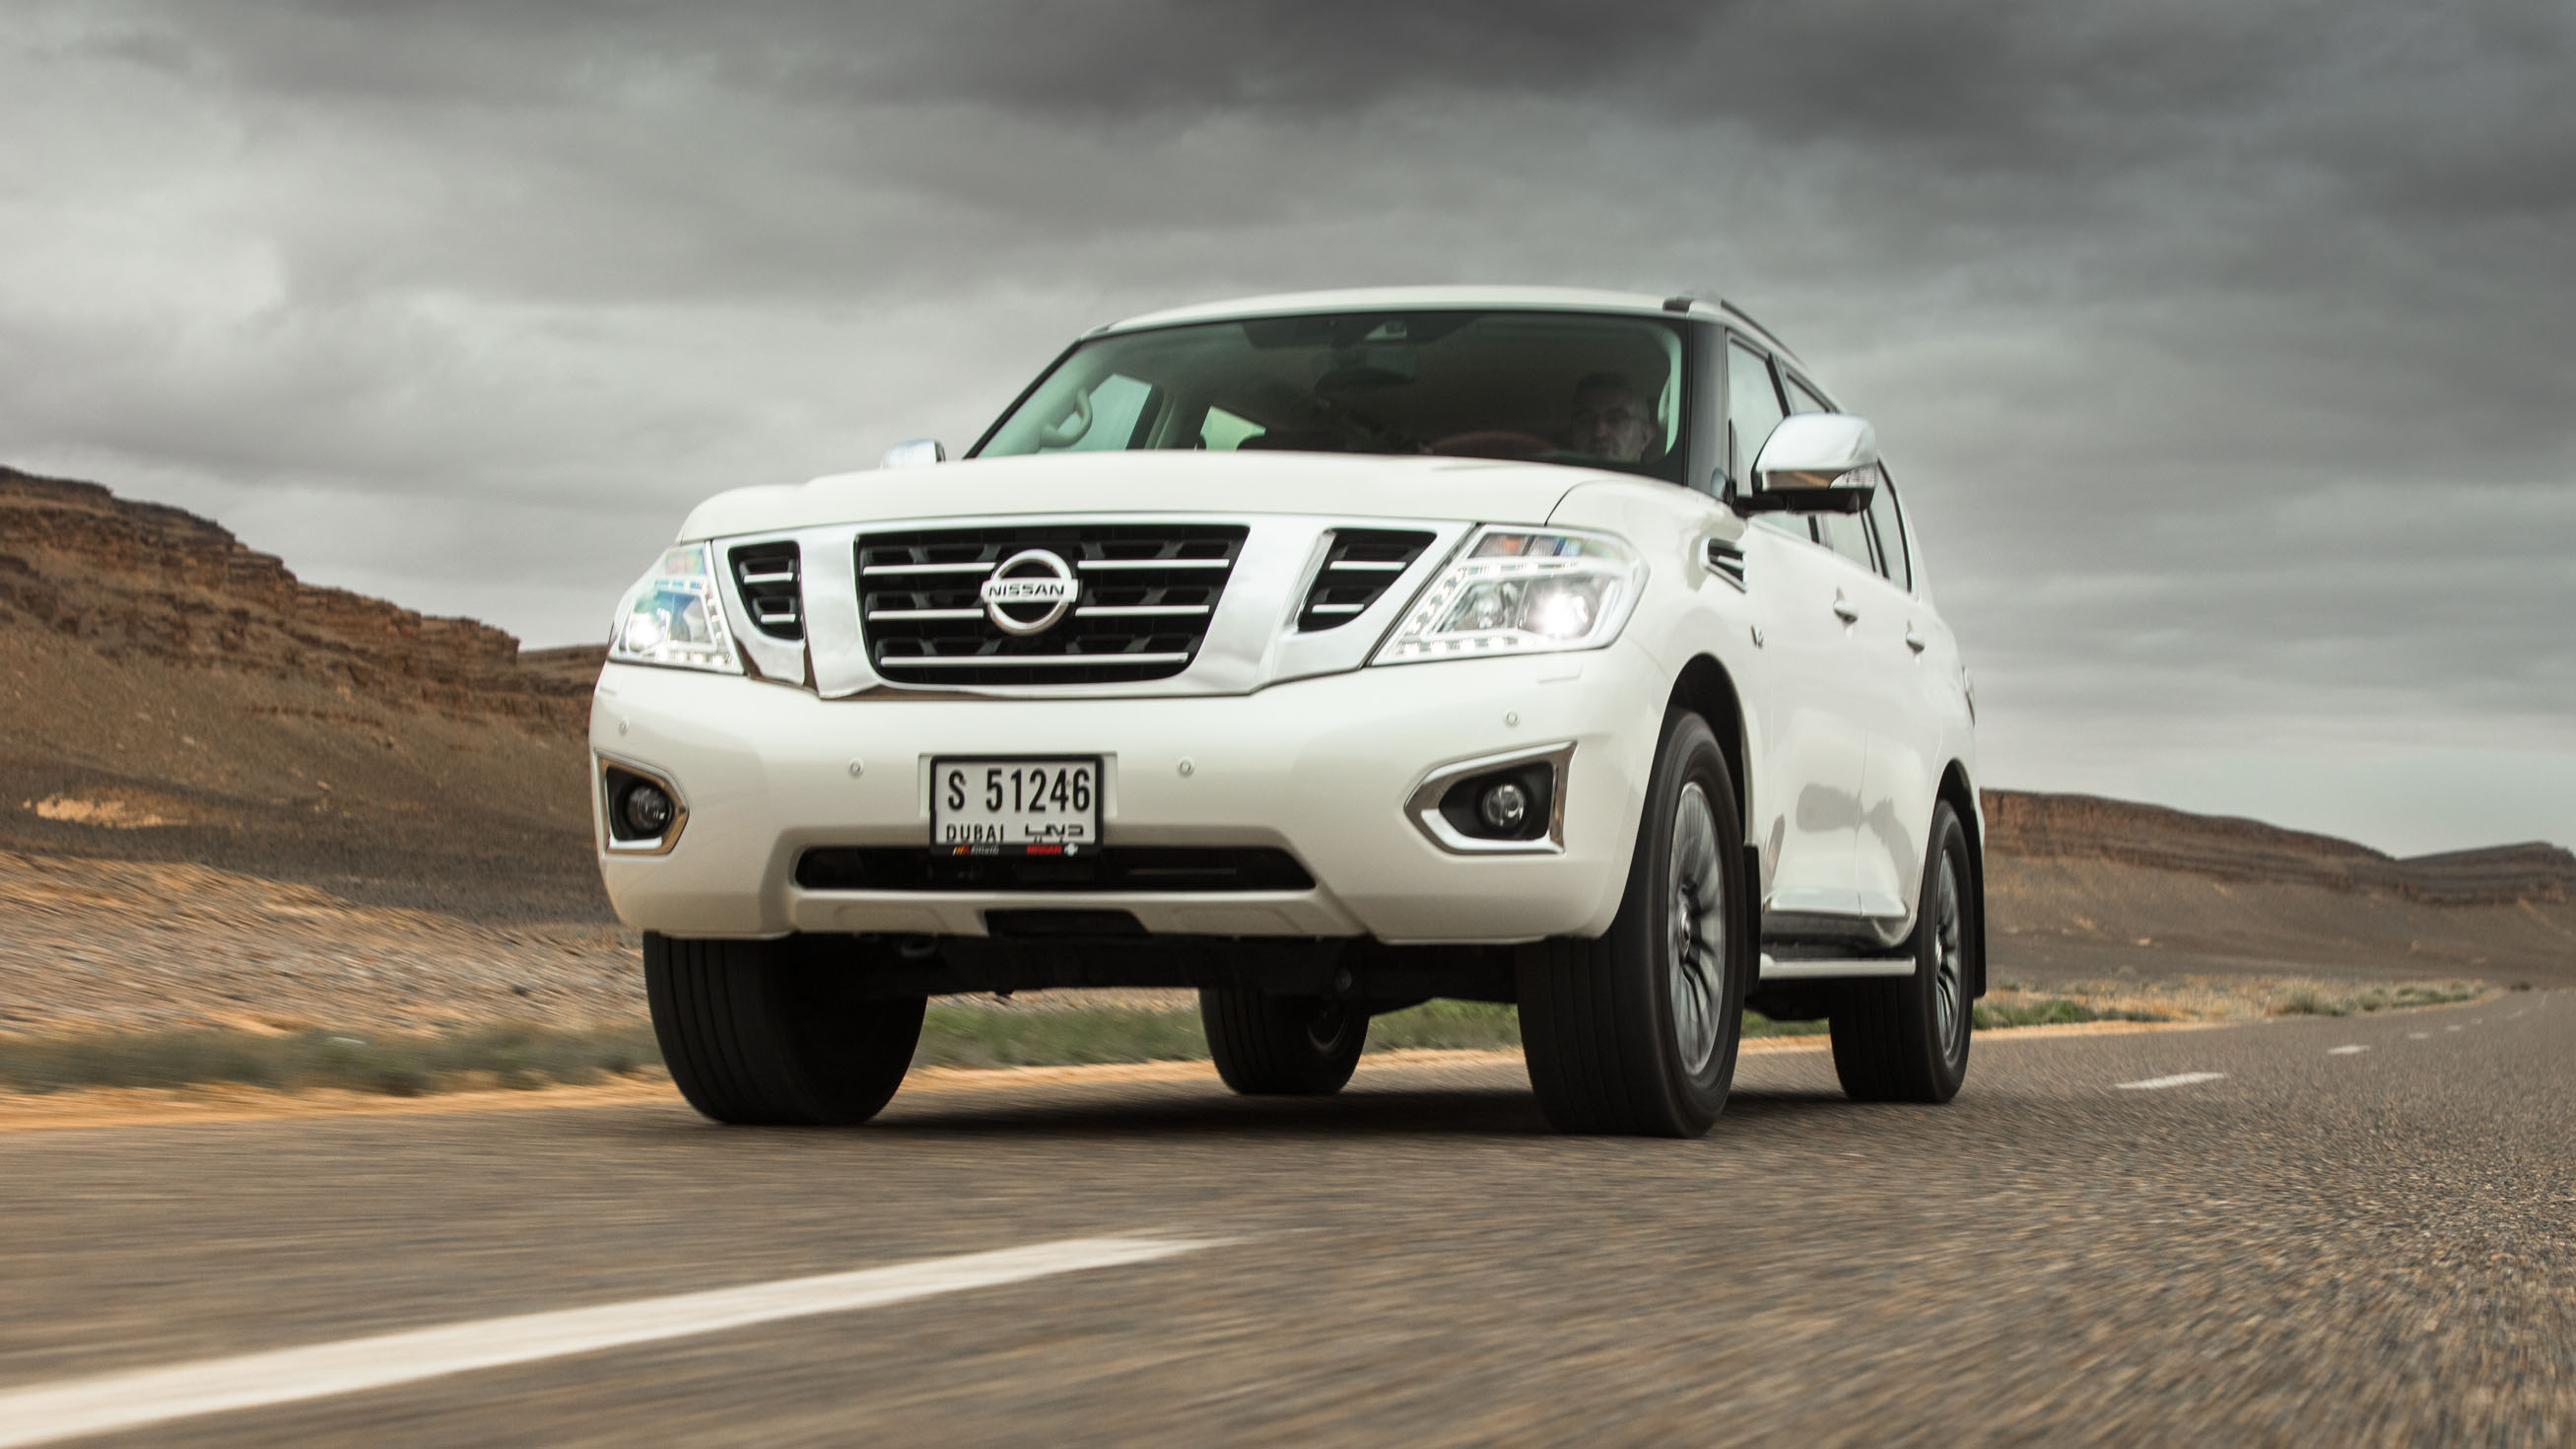 Nissan Patrol review: old-school V8 SUV tested | Top Gear